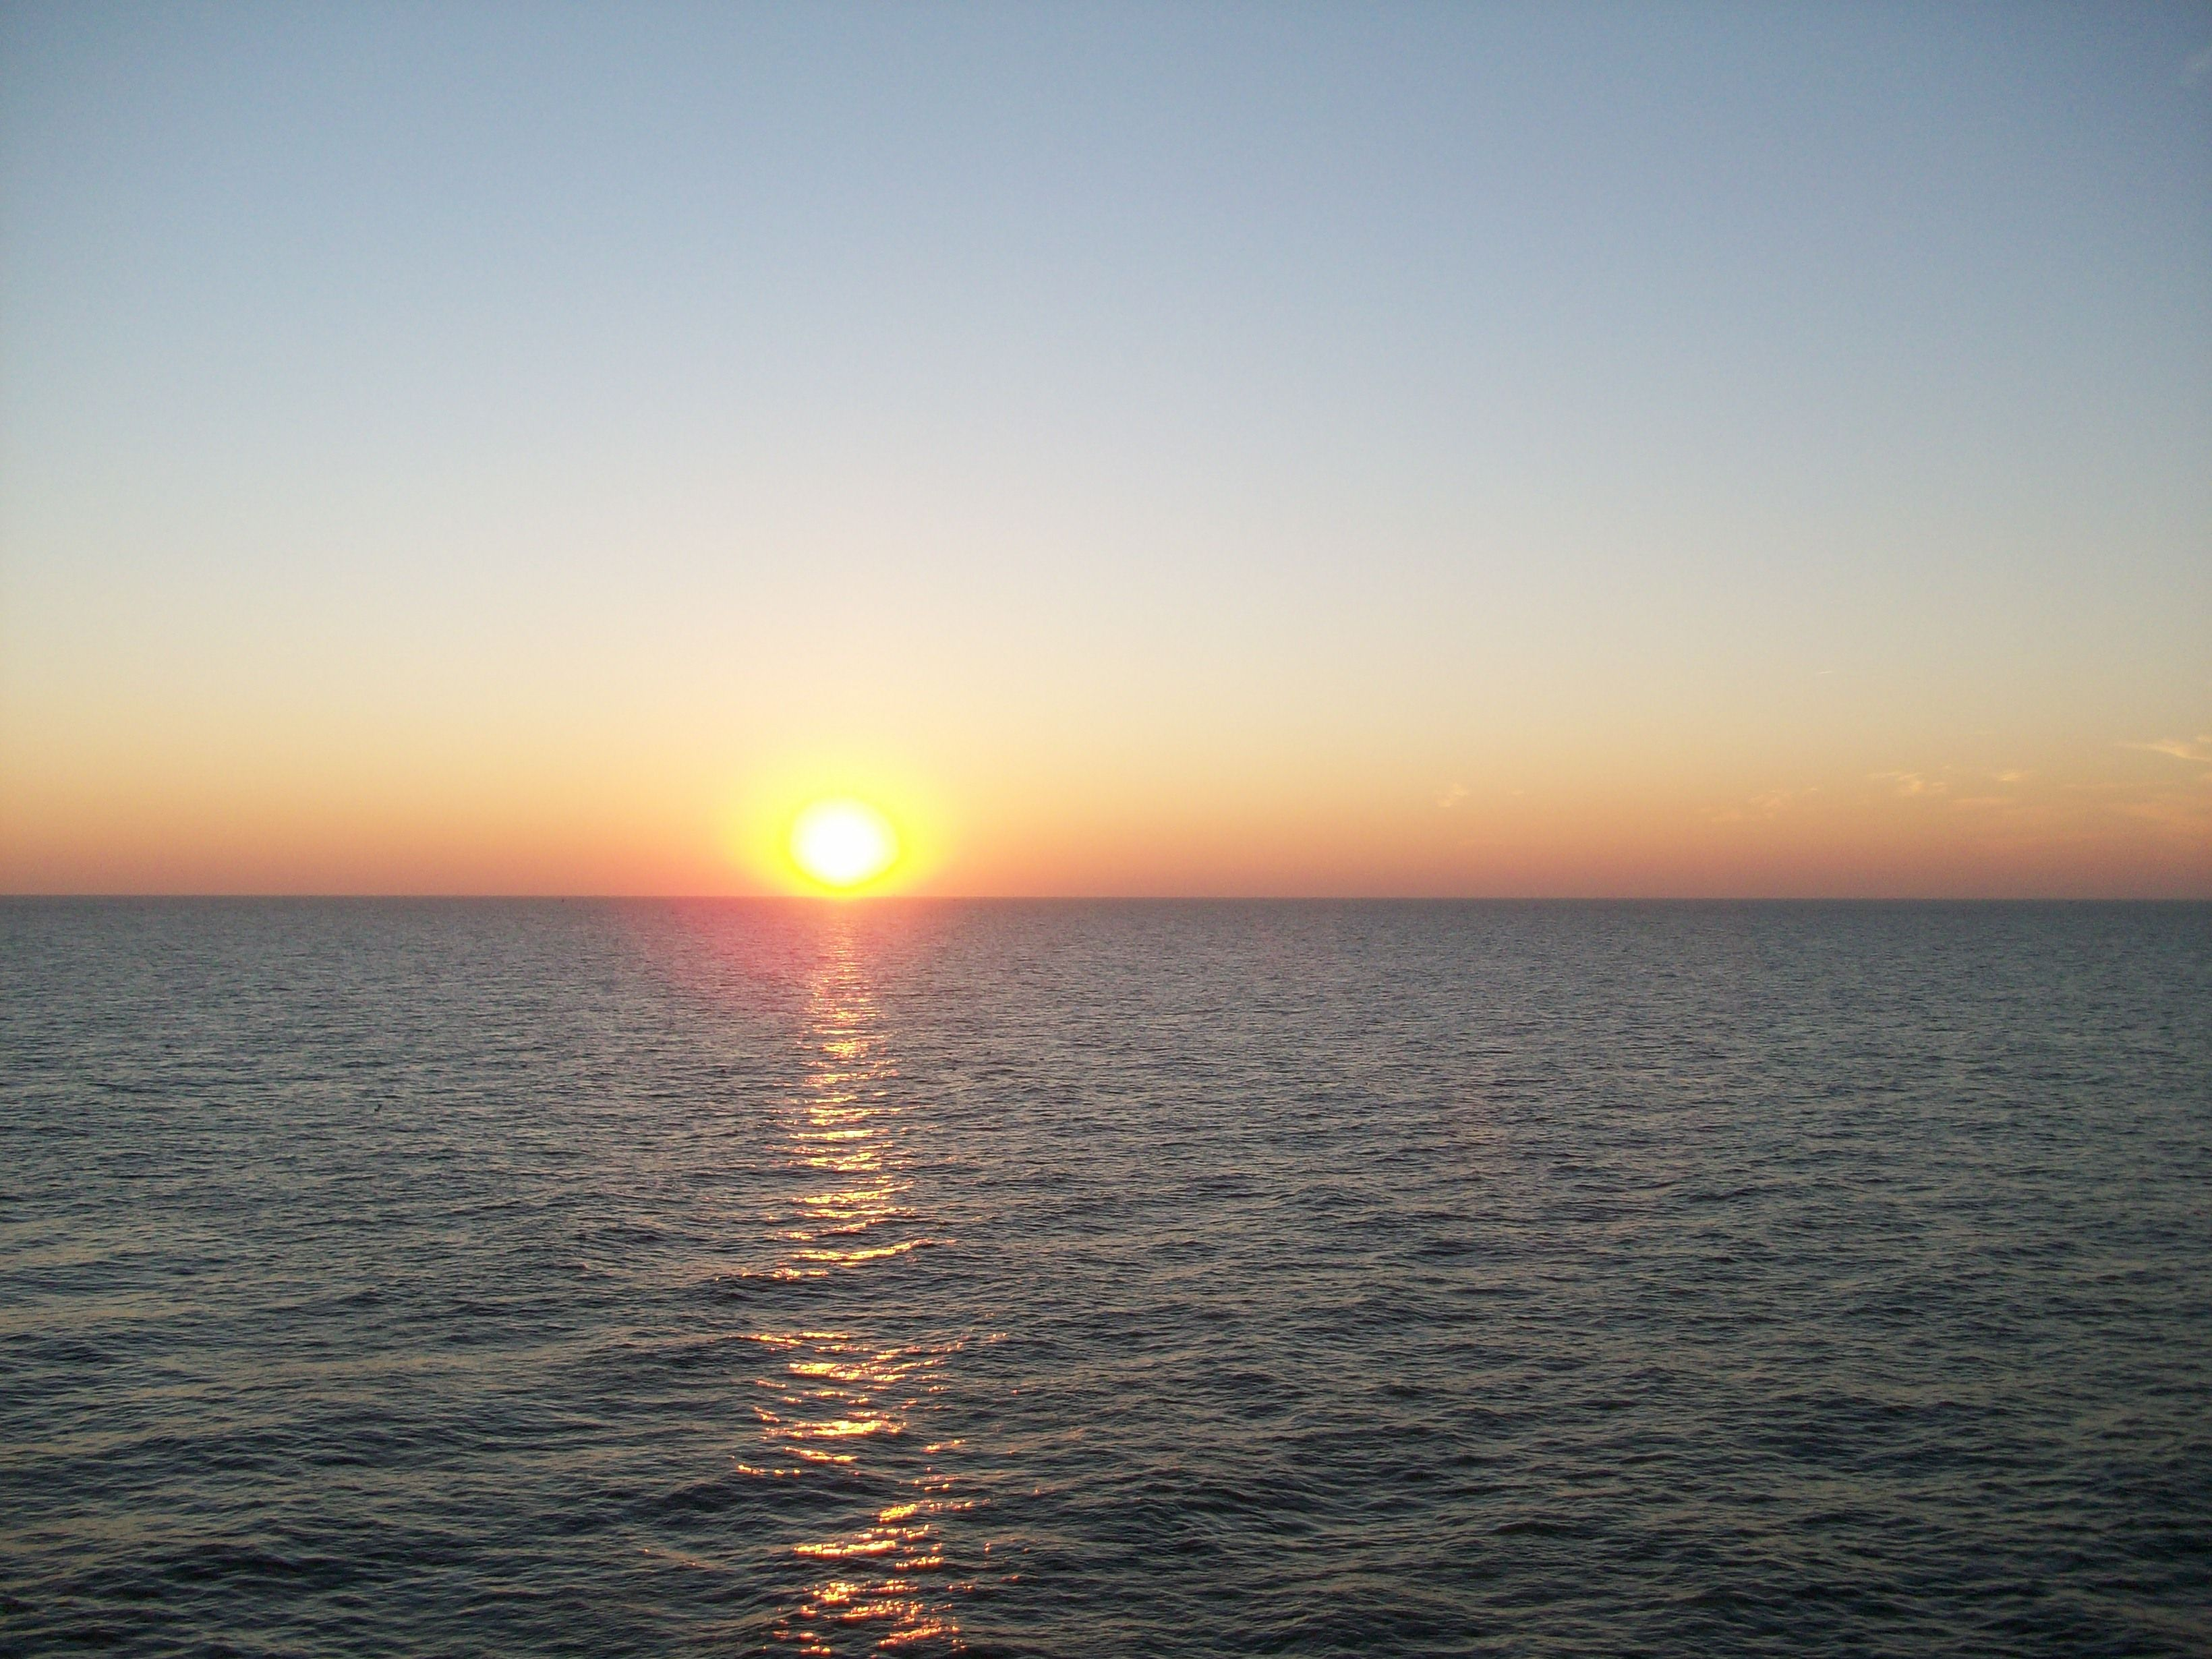 The sun sinks into the sea ... at Scheveningen, Holland. And someday I'll come back, so like the sun! :-)